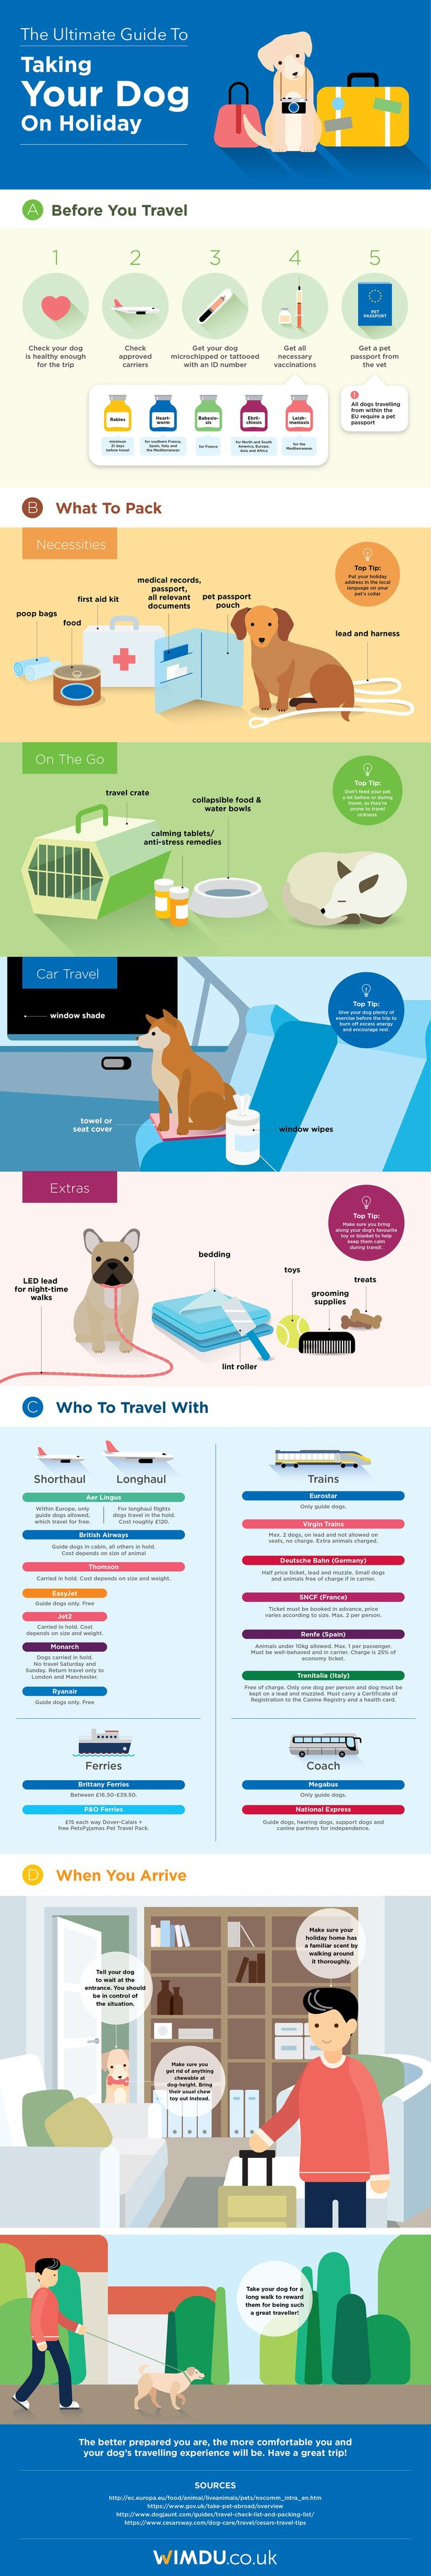 No holiday plans yet, but it should come in handy at some point...   The Ultimate Guide to Taking Your Dog on Holiday #Infographic